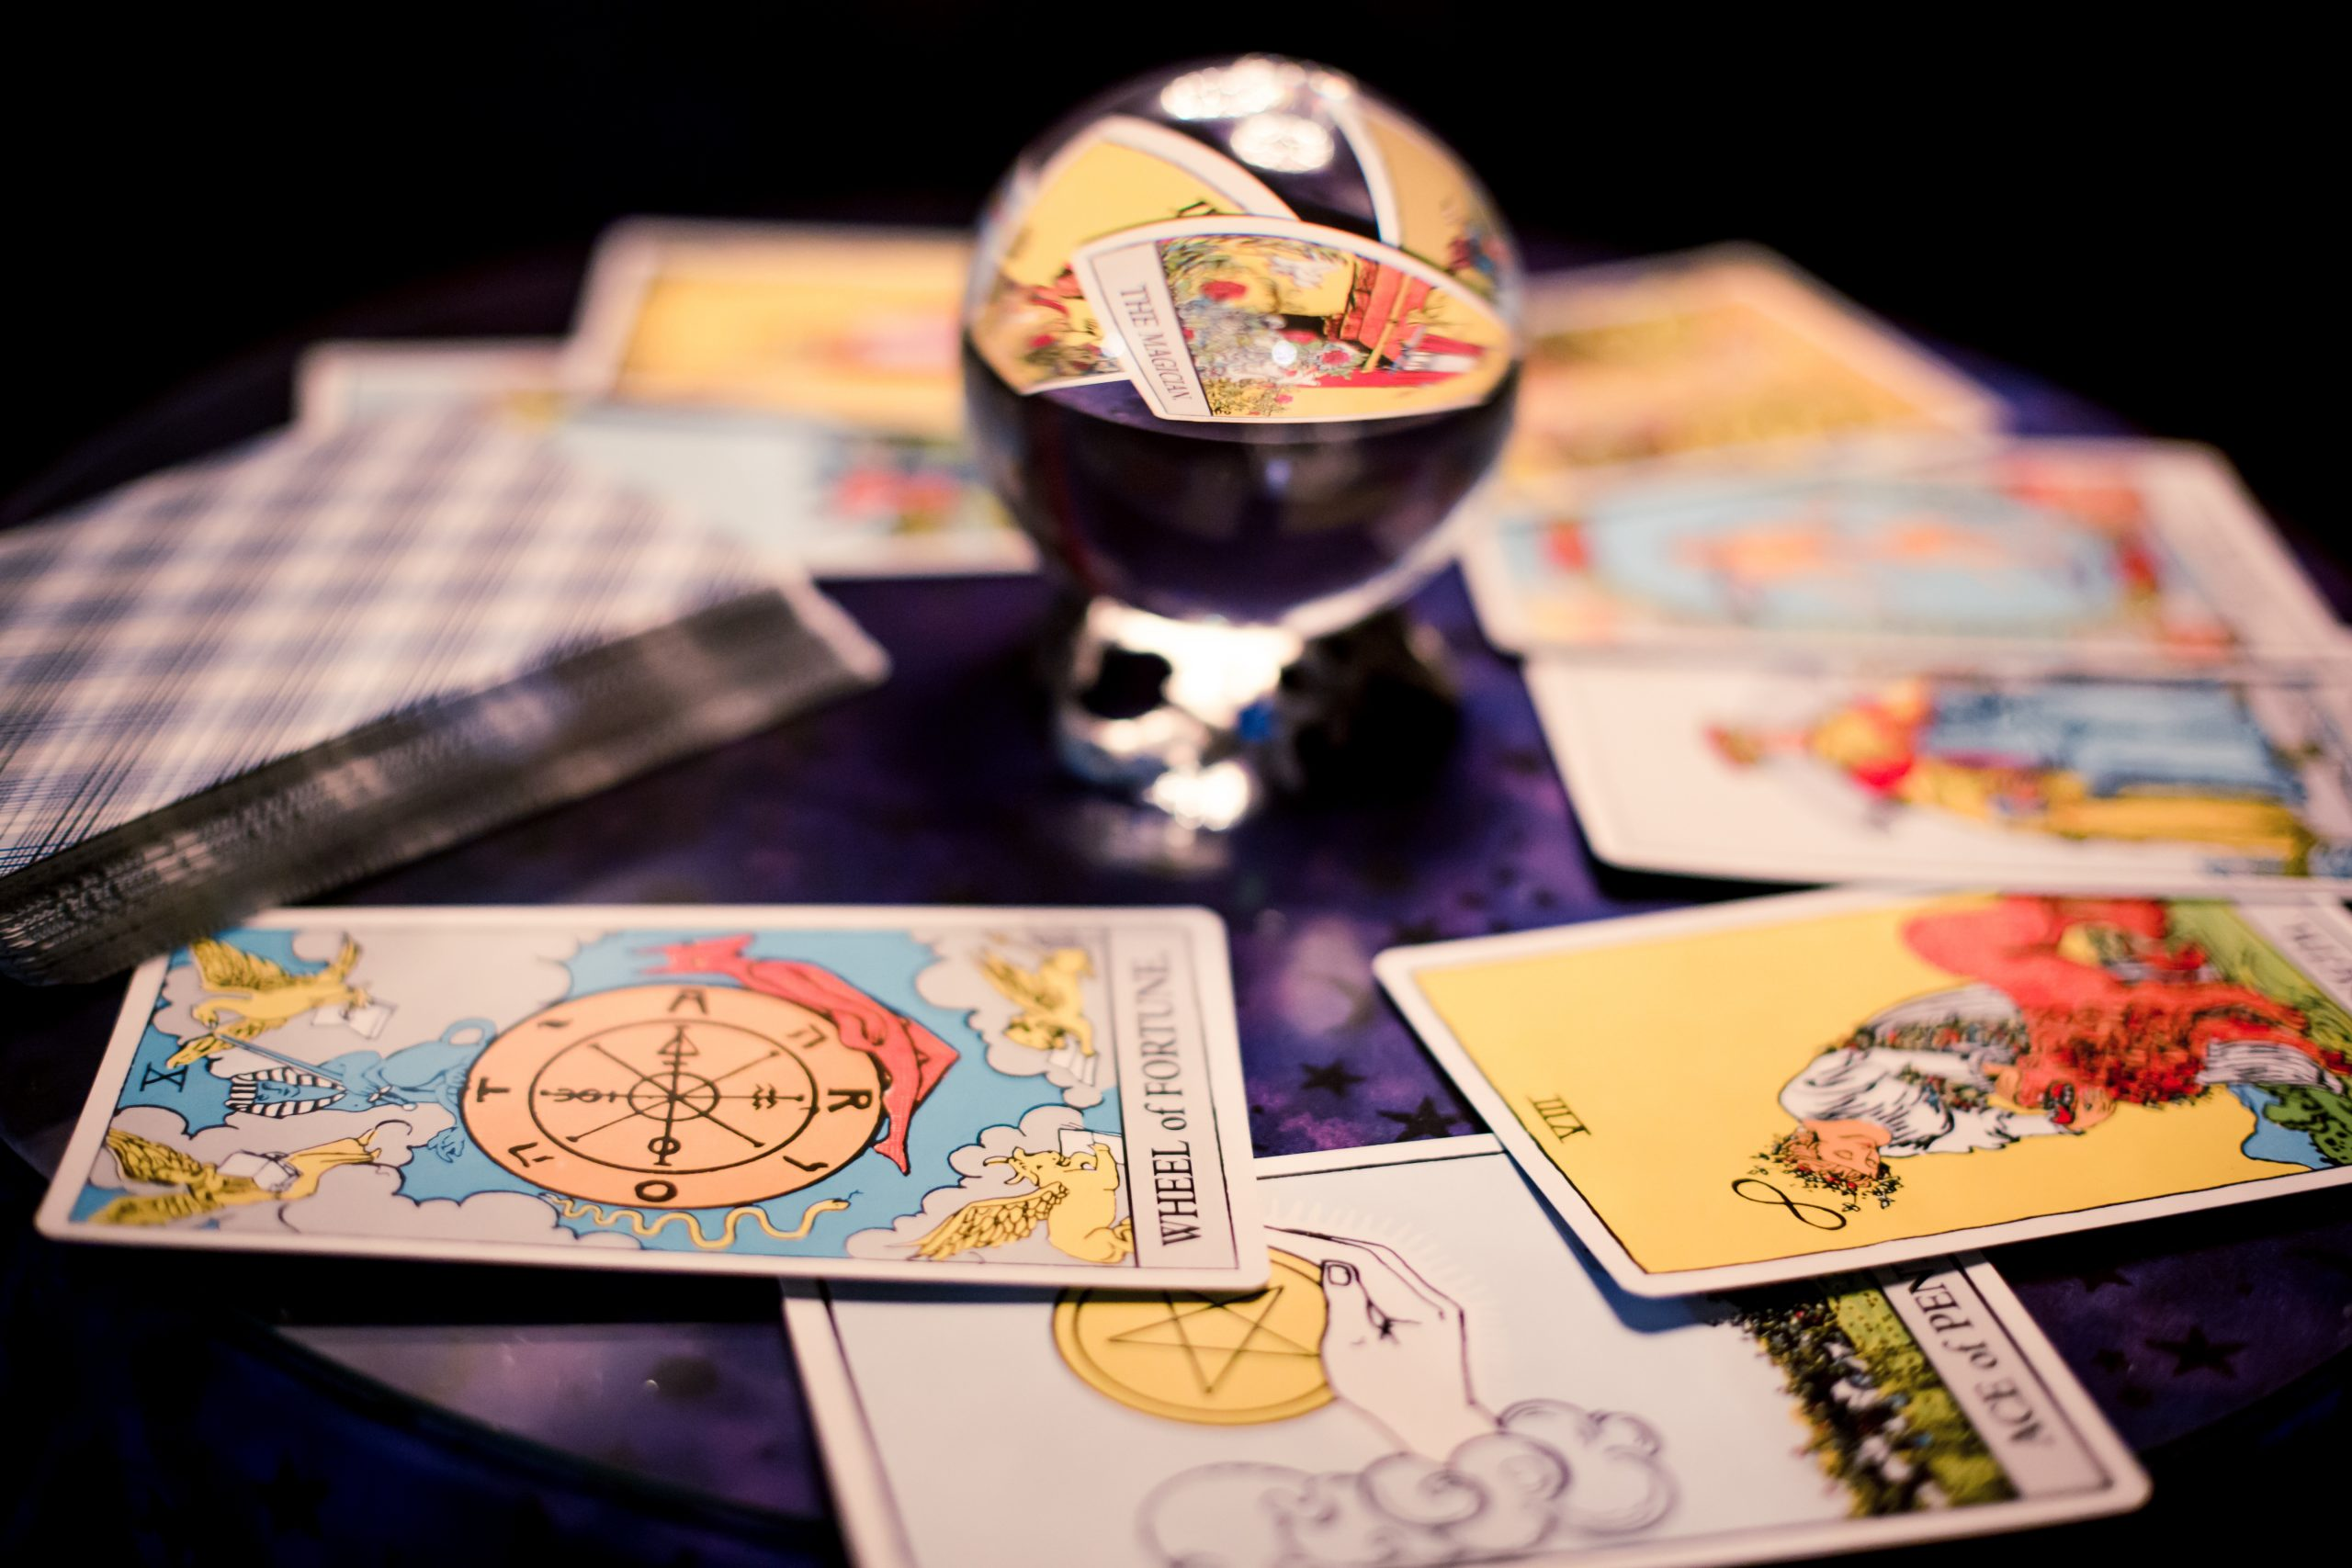 Antique tarot cards spread on a purple table surrounding crystal ball for Halloween